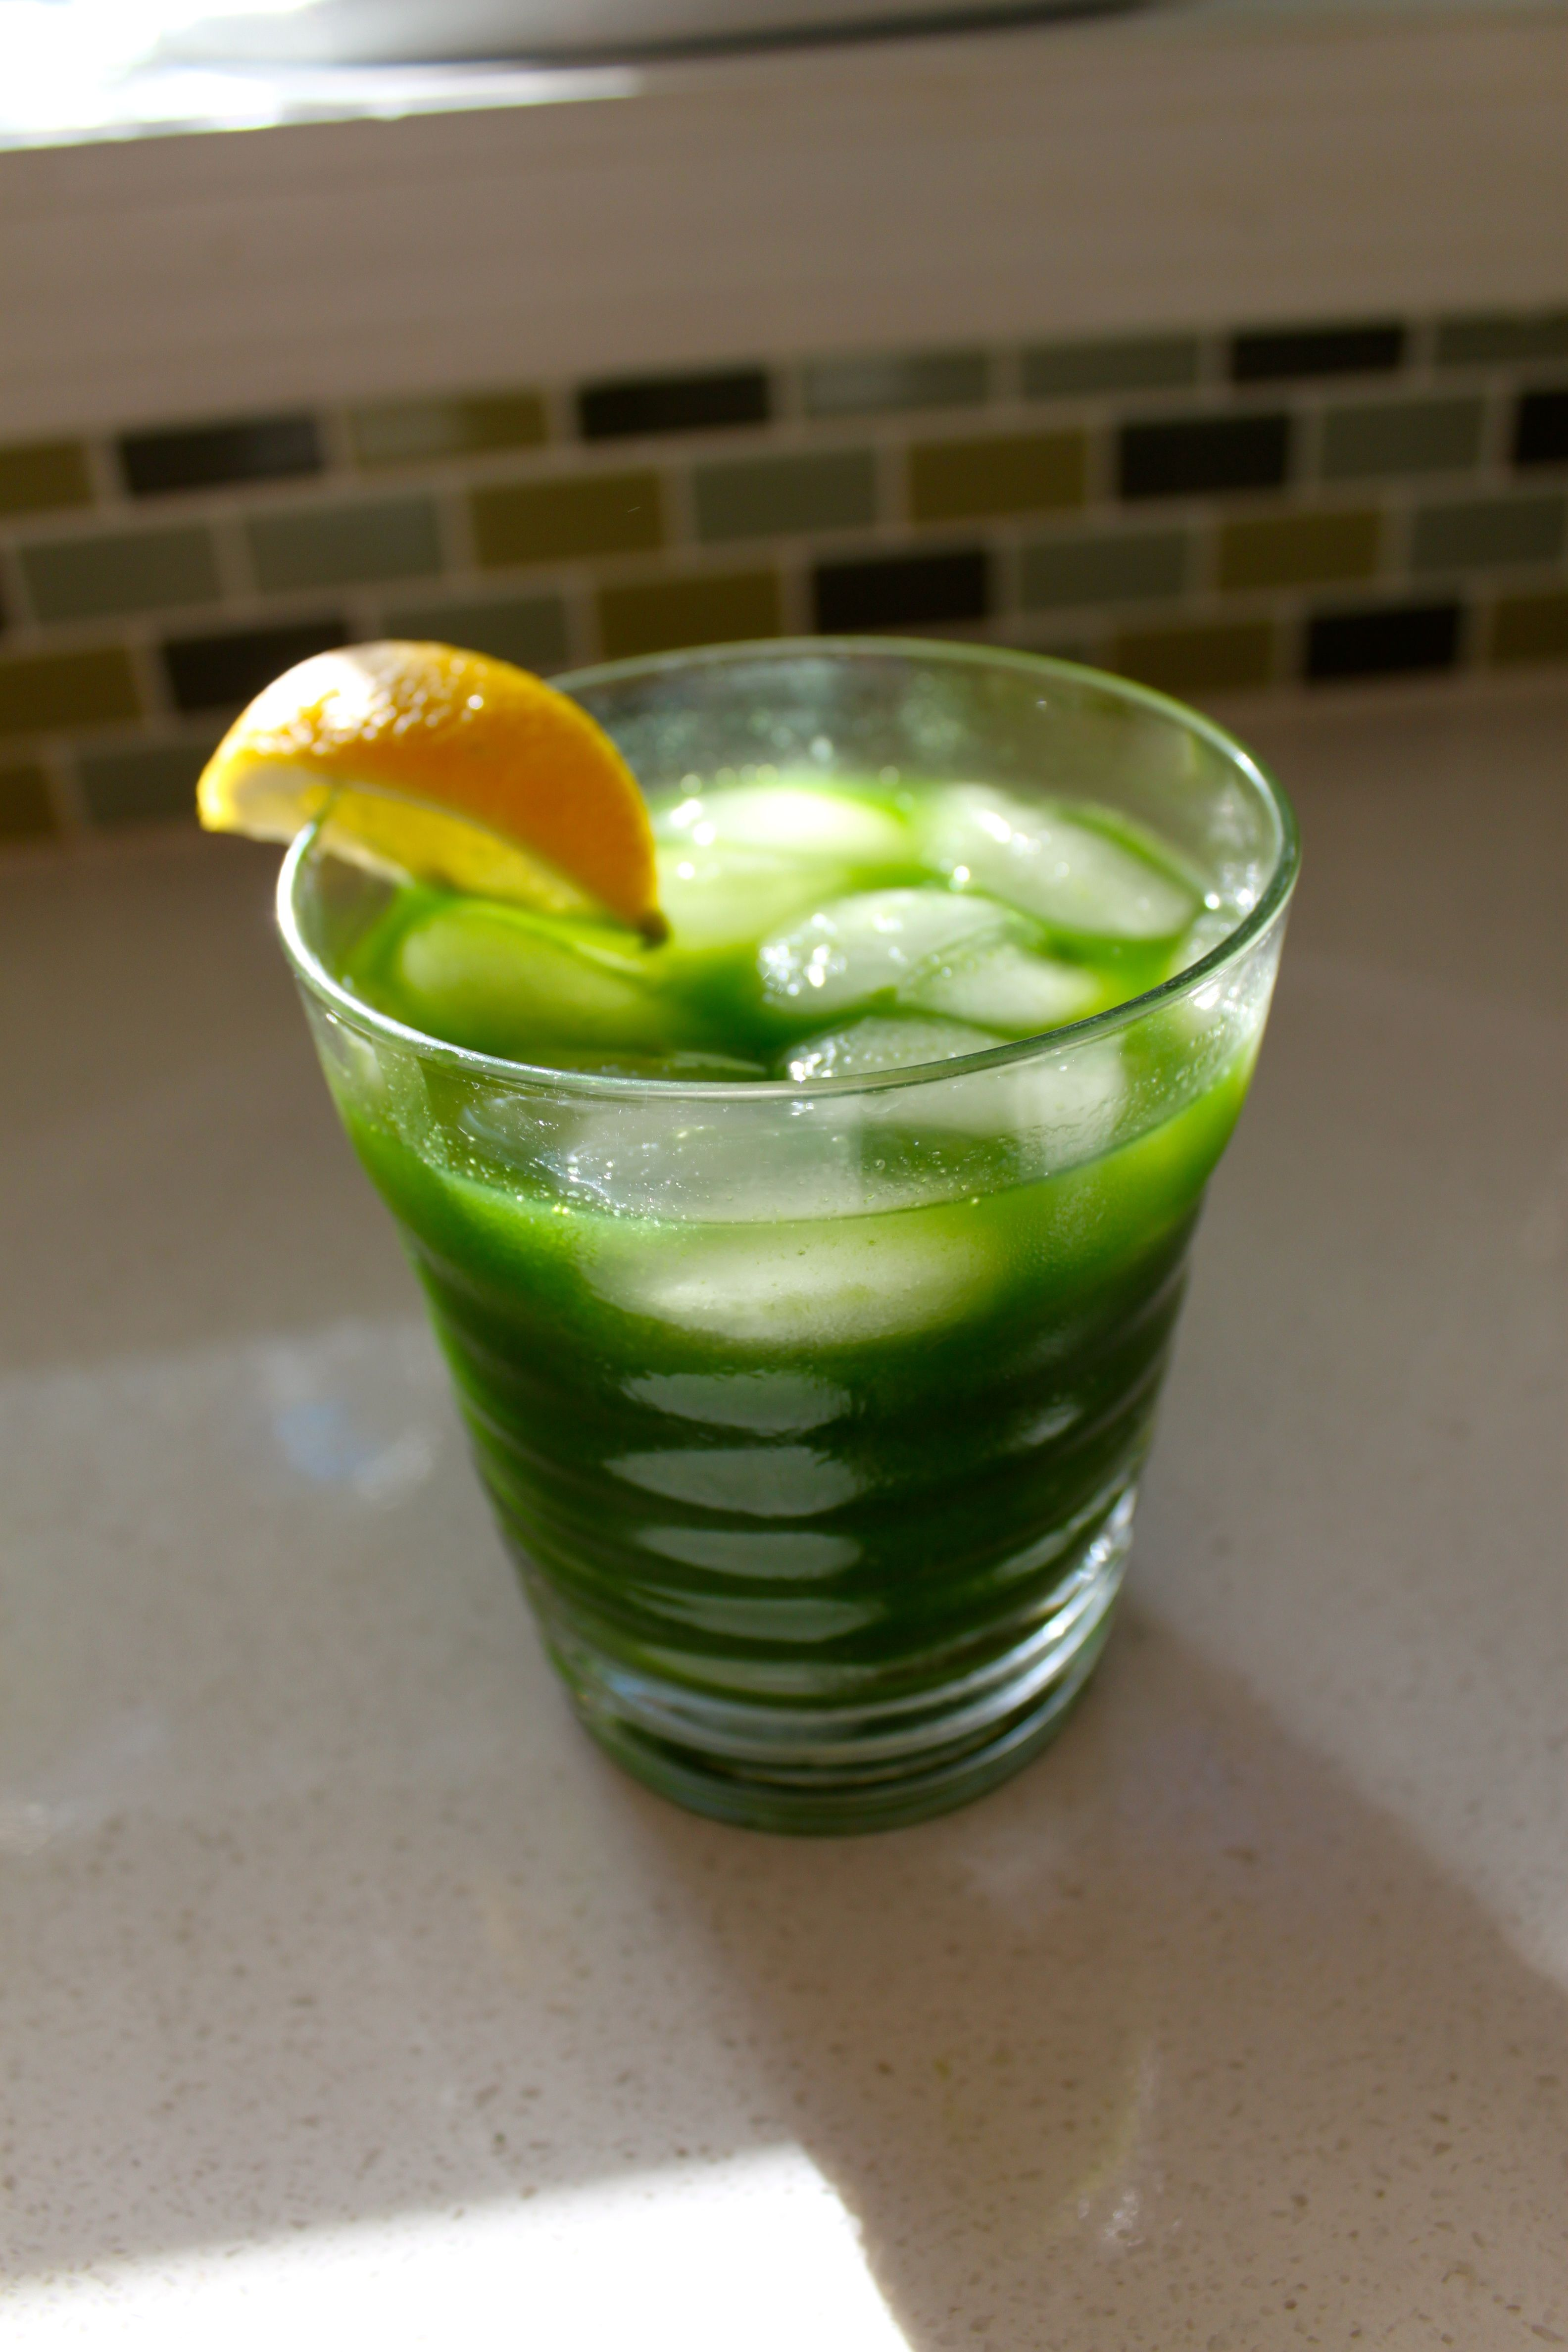 Another Kale cocktail